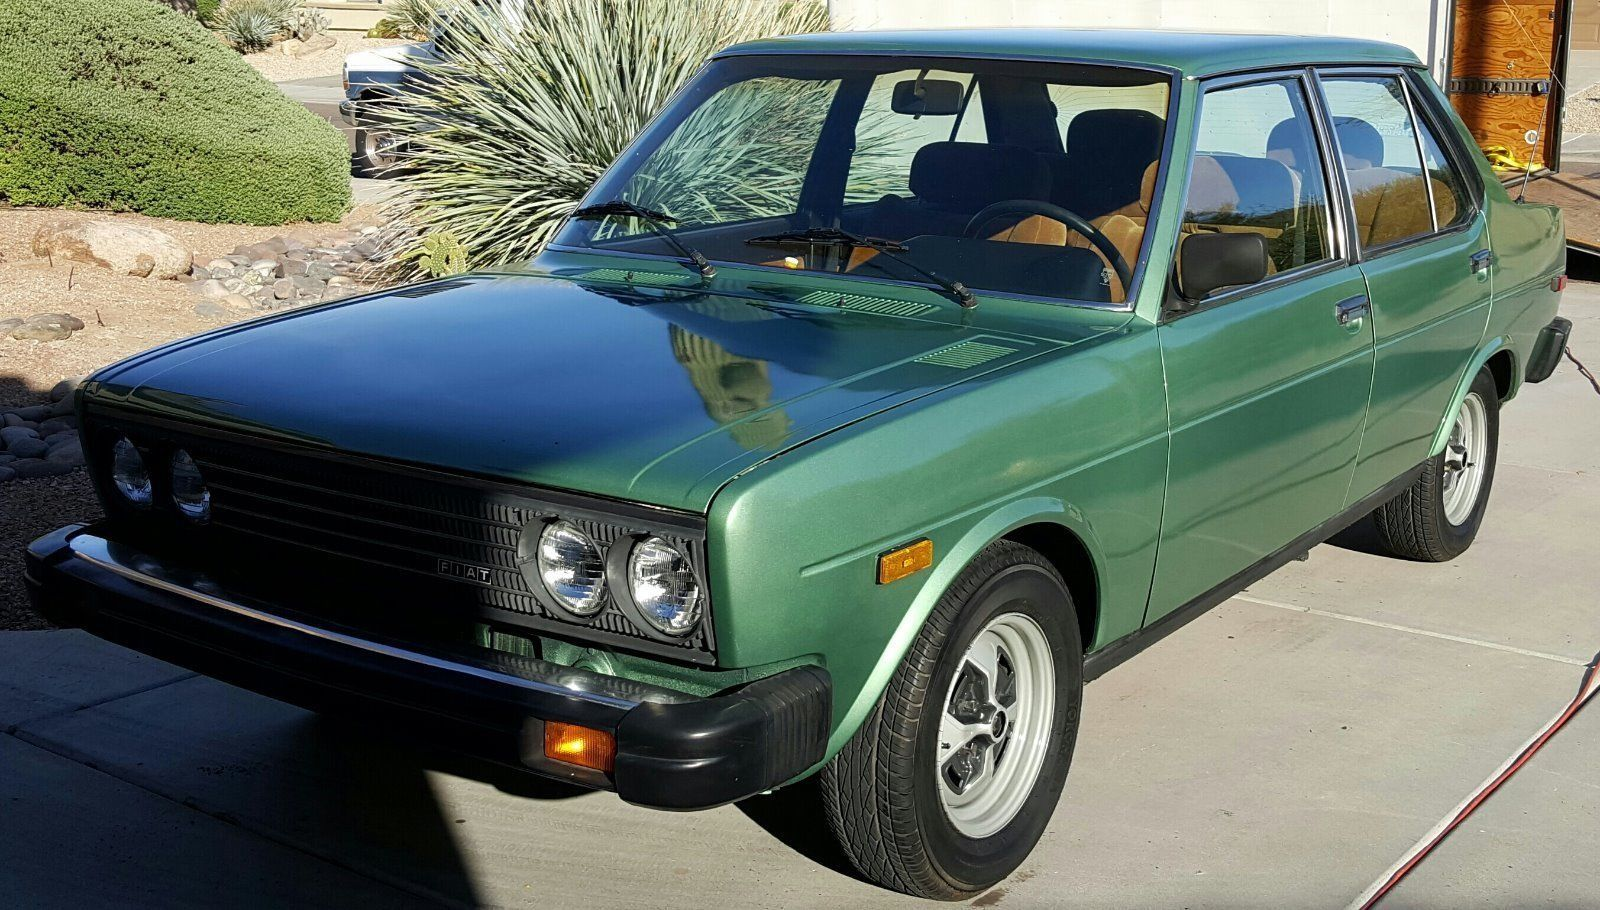 Its Name Is Sophie: 1978 Fiat 131 Brava | Fiat, Barn finds and Cars